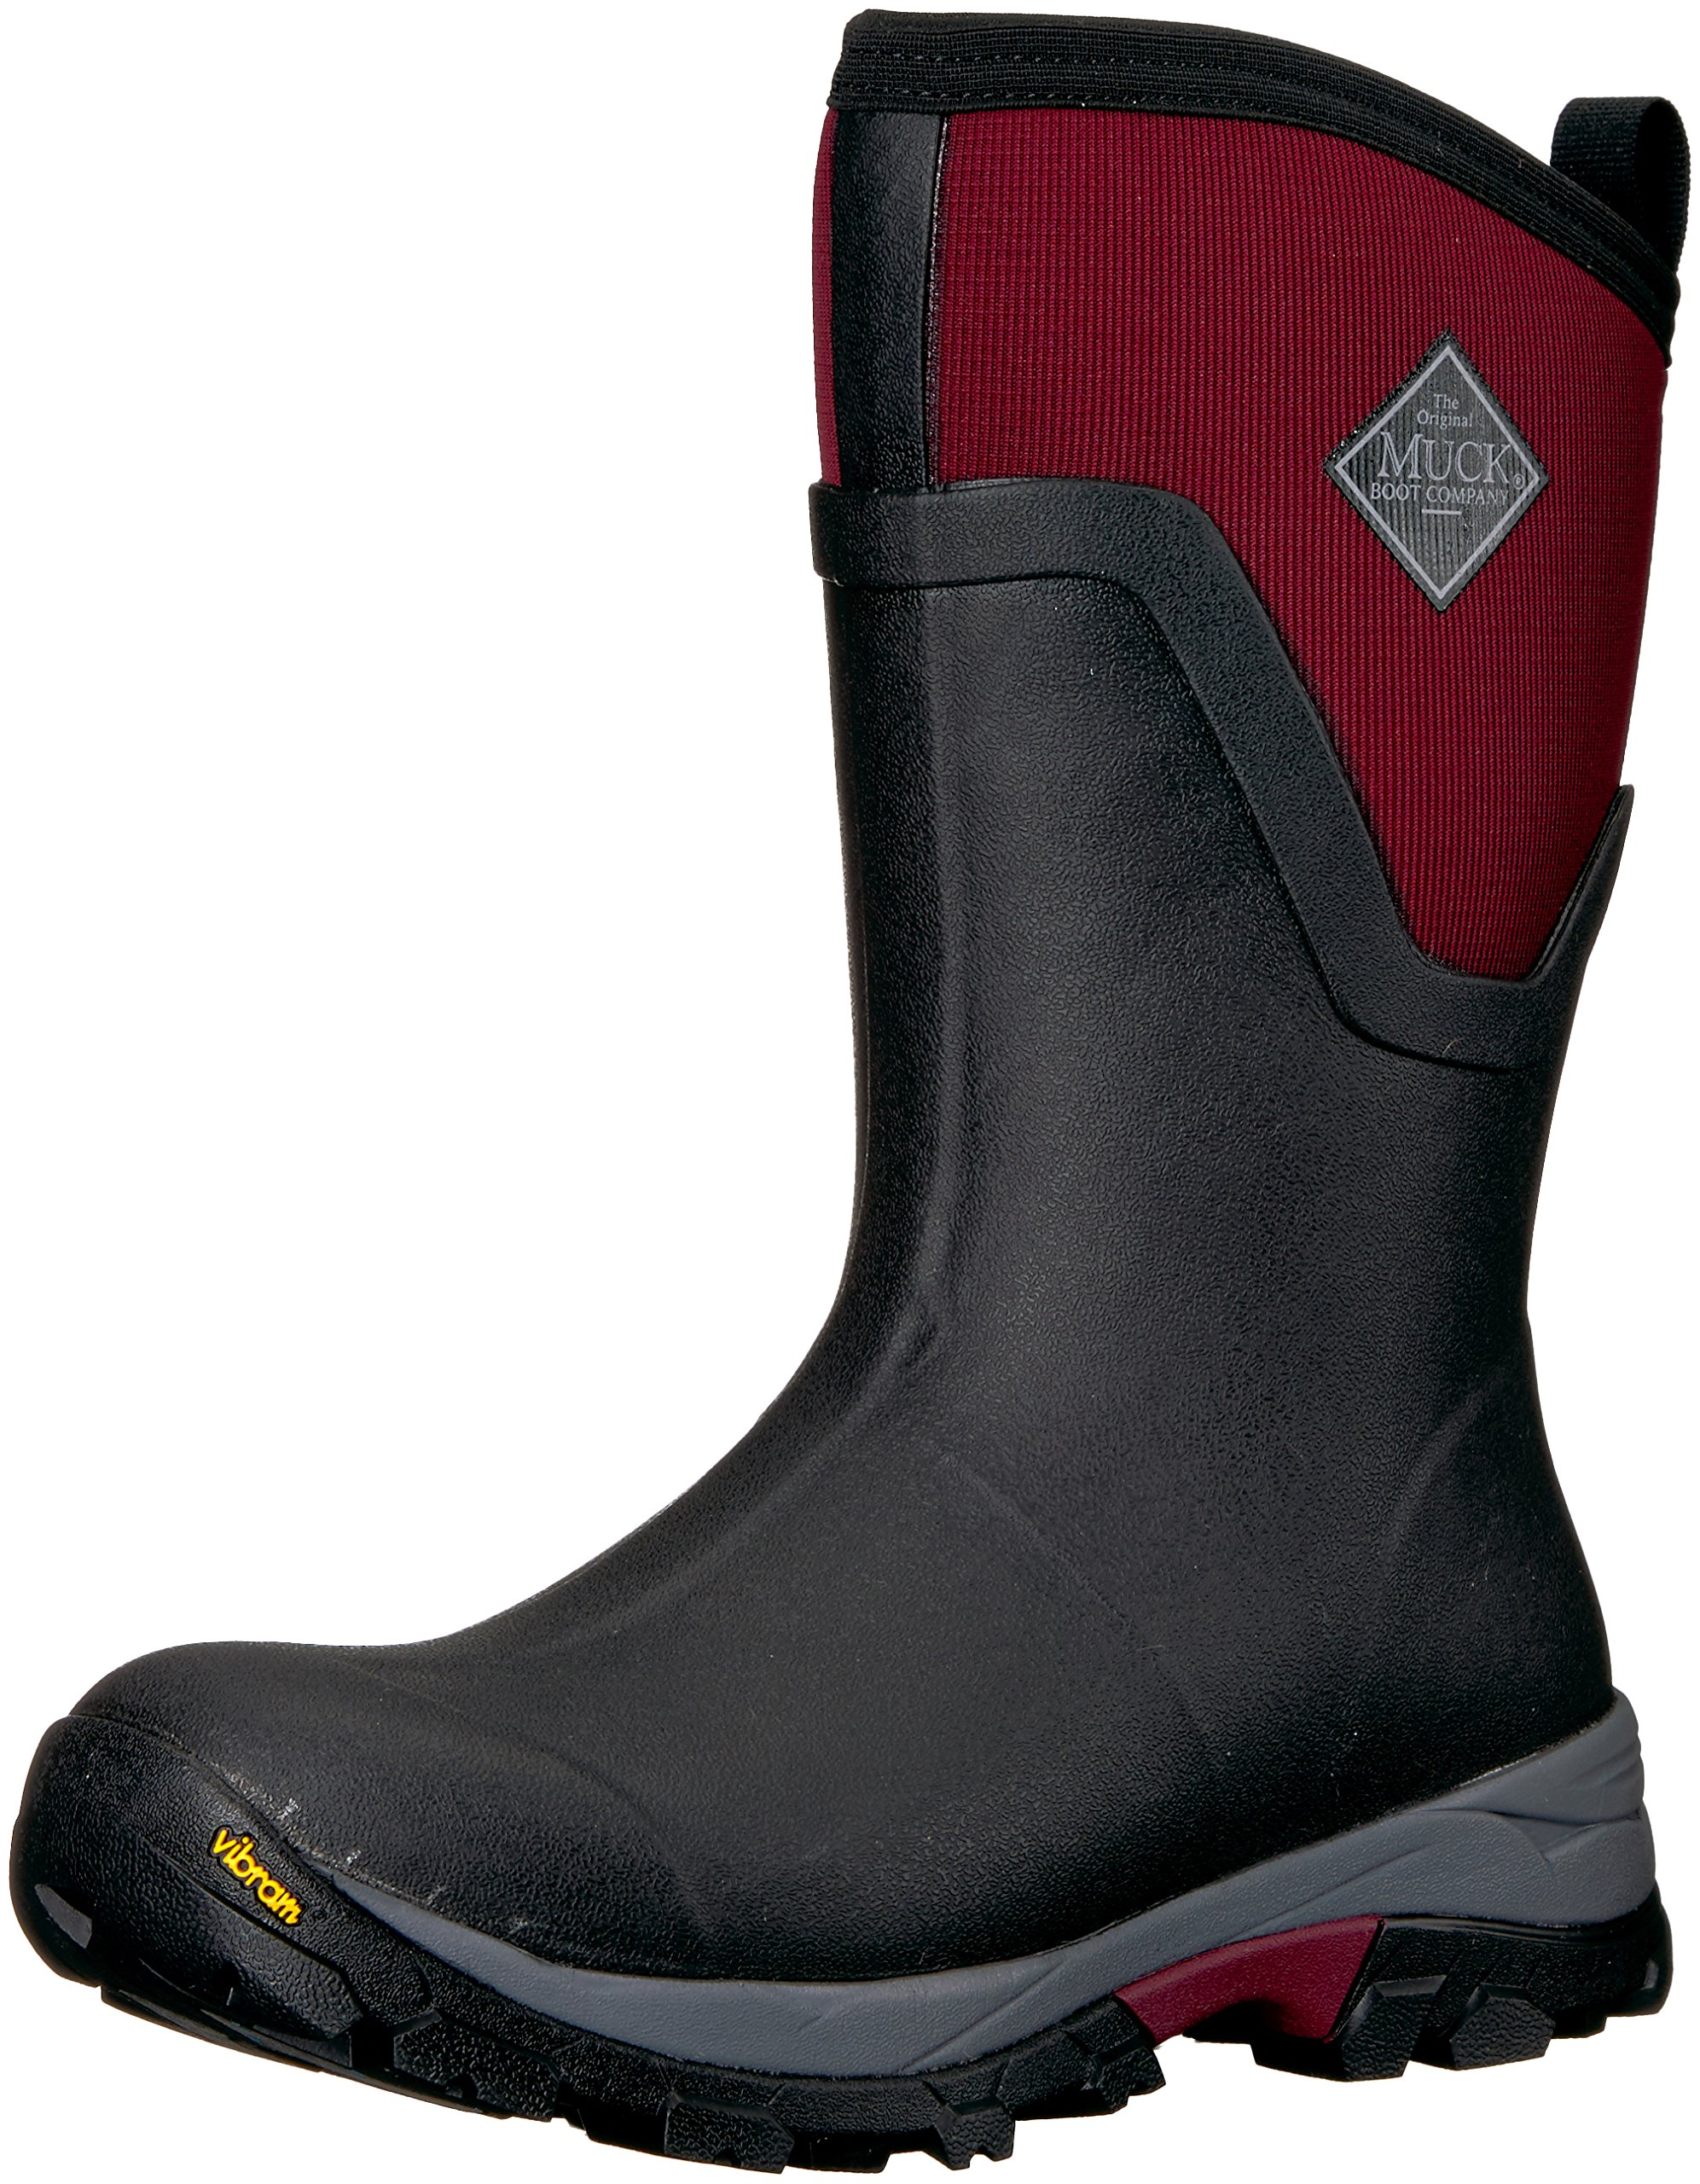 Muck Boot Women's Arctic Ice Mid Work Boot, Black/Windsor Wine, 10 M US